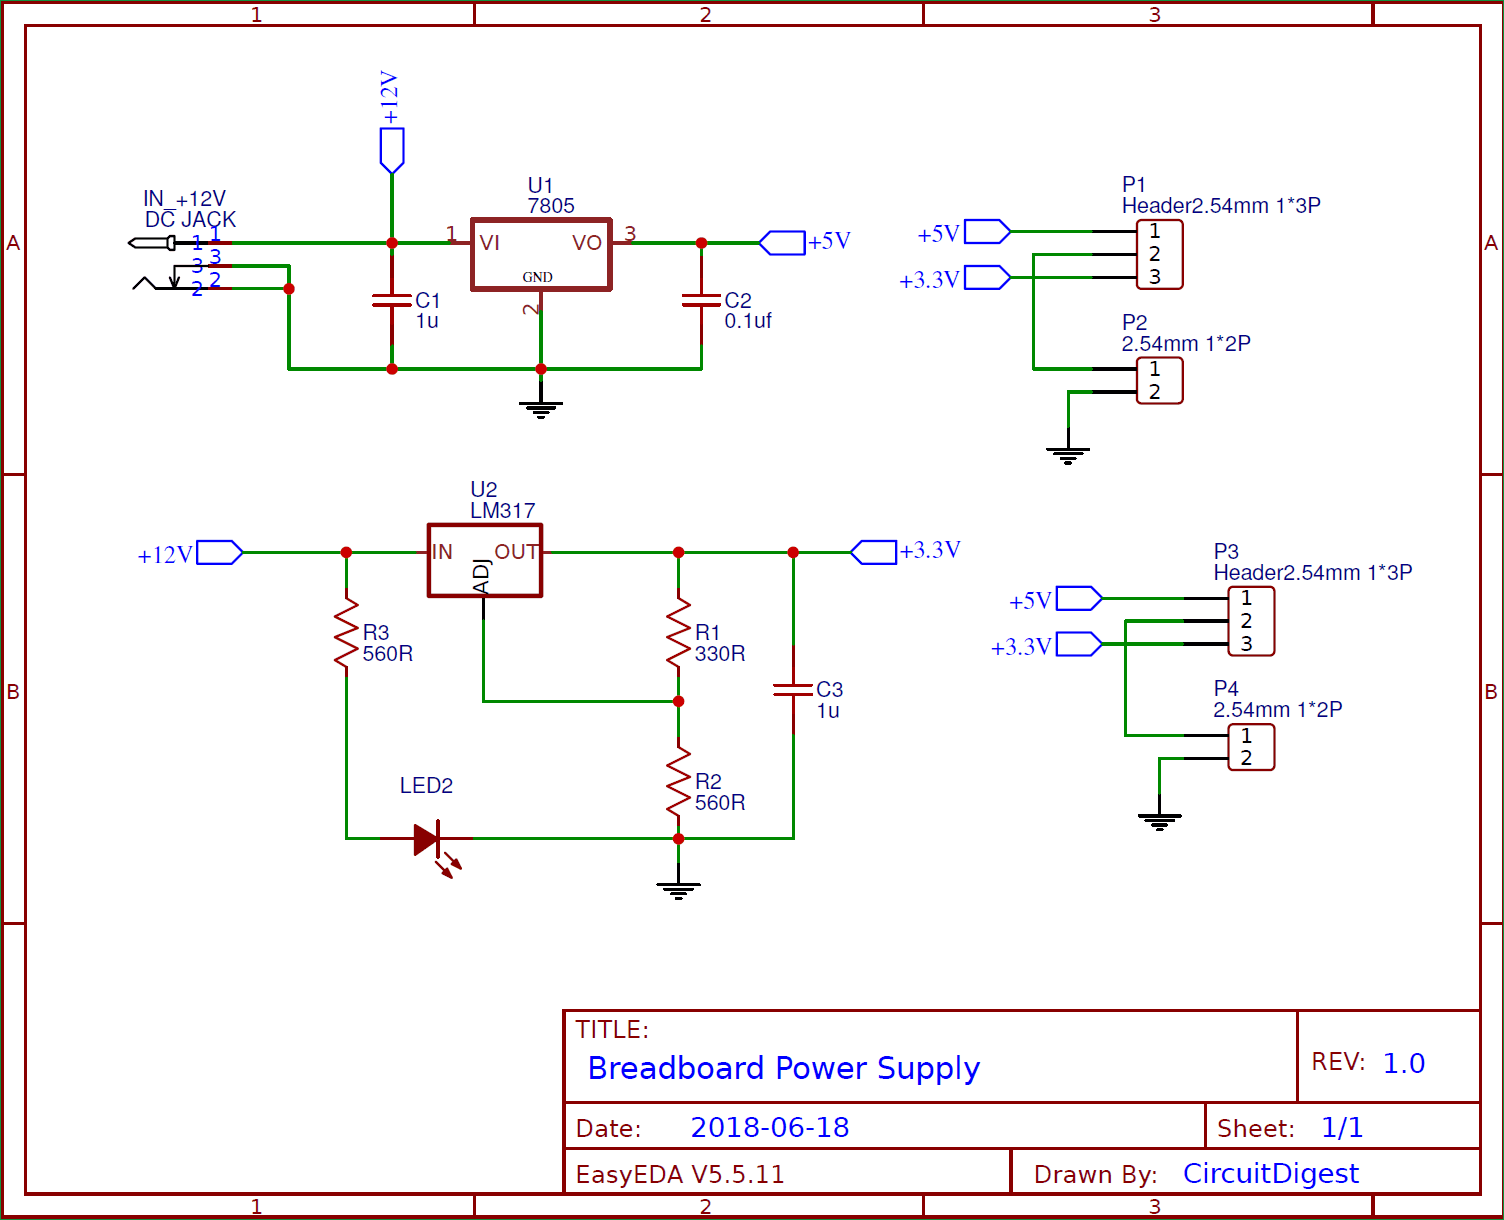 small resolution of circuit diagram for diy breadboard power supply circuit on pcb